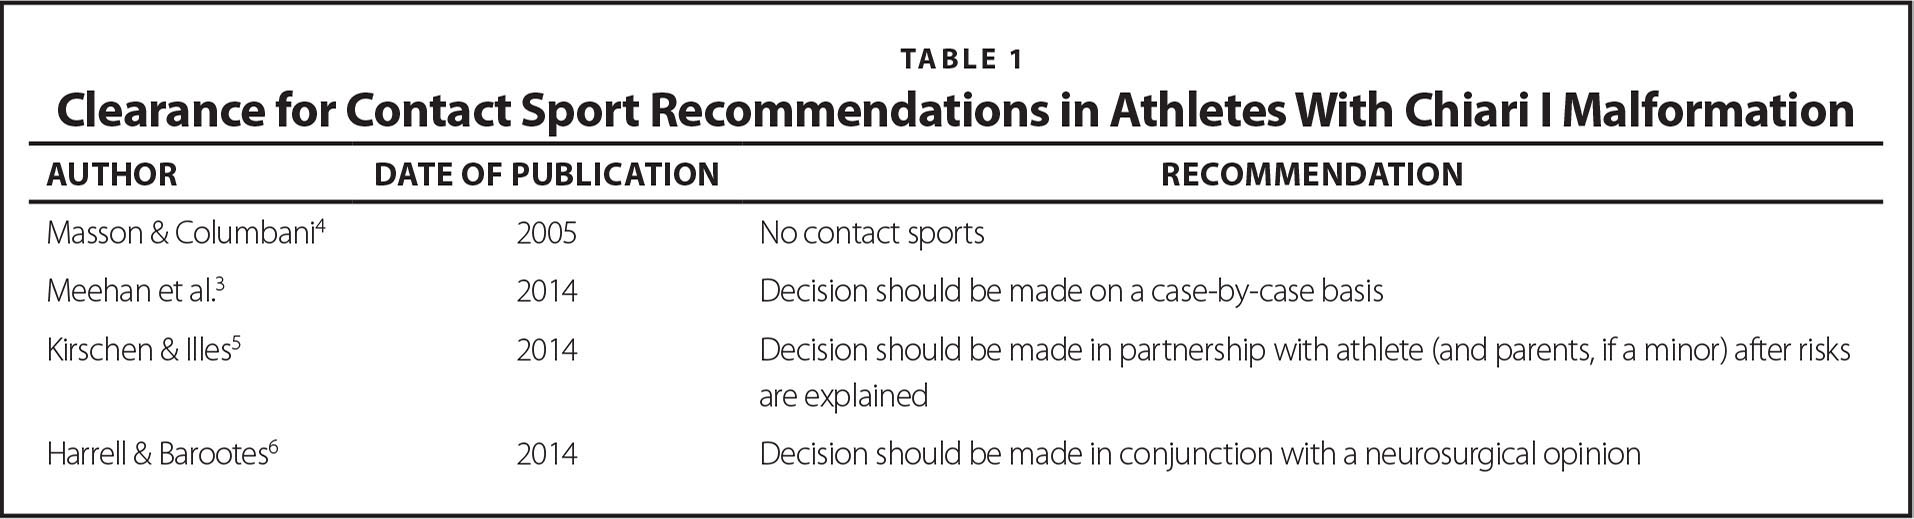 Clearance for Contact Sport Recommendations in Athletes With Chiari I Malformation